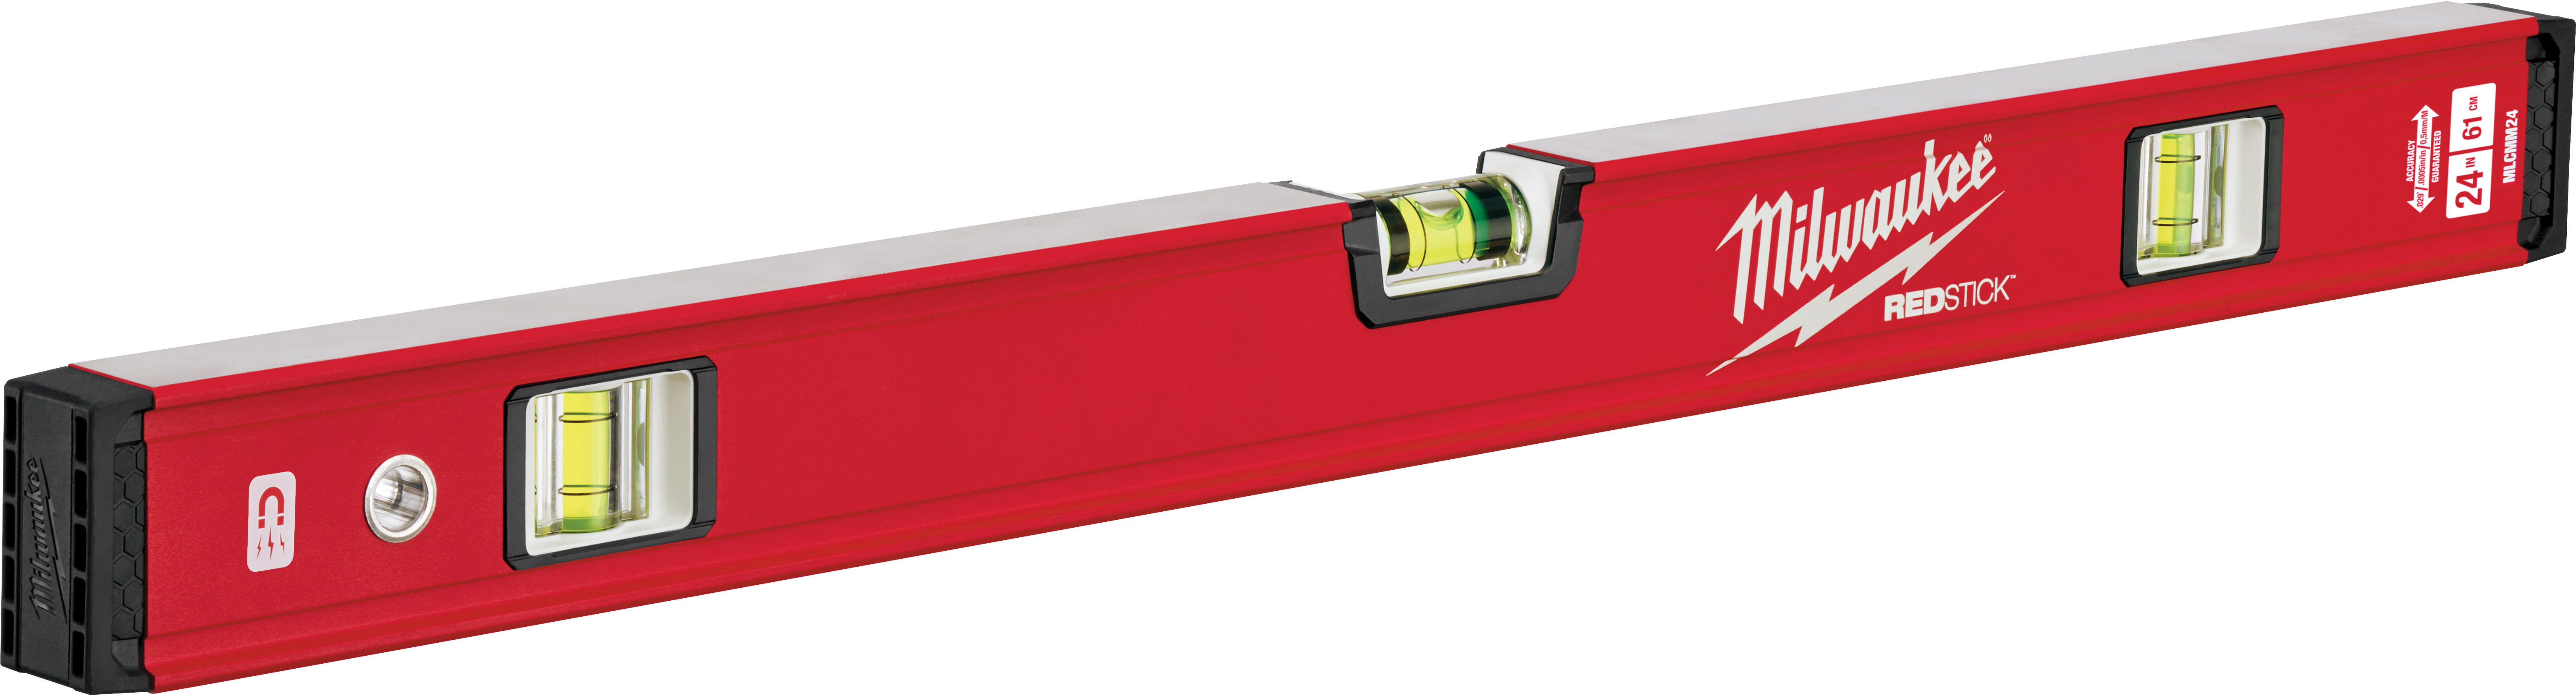 Milwaukee® REDSTICK™ MLCMM24 Compact Magnetic Box Level, 24 in L, 3 Vials, Aluminum, (1) Level, (2) Plumb Vial Position, 0.0005 in/in Accuracy